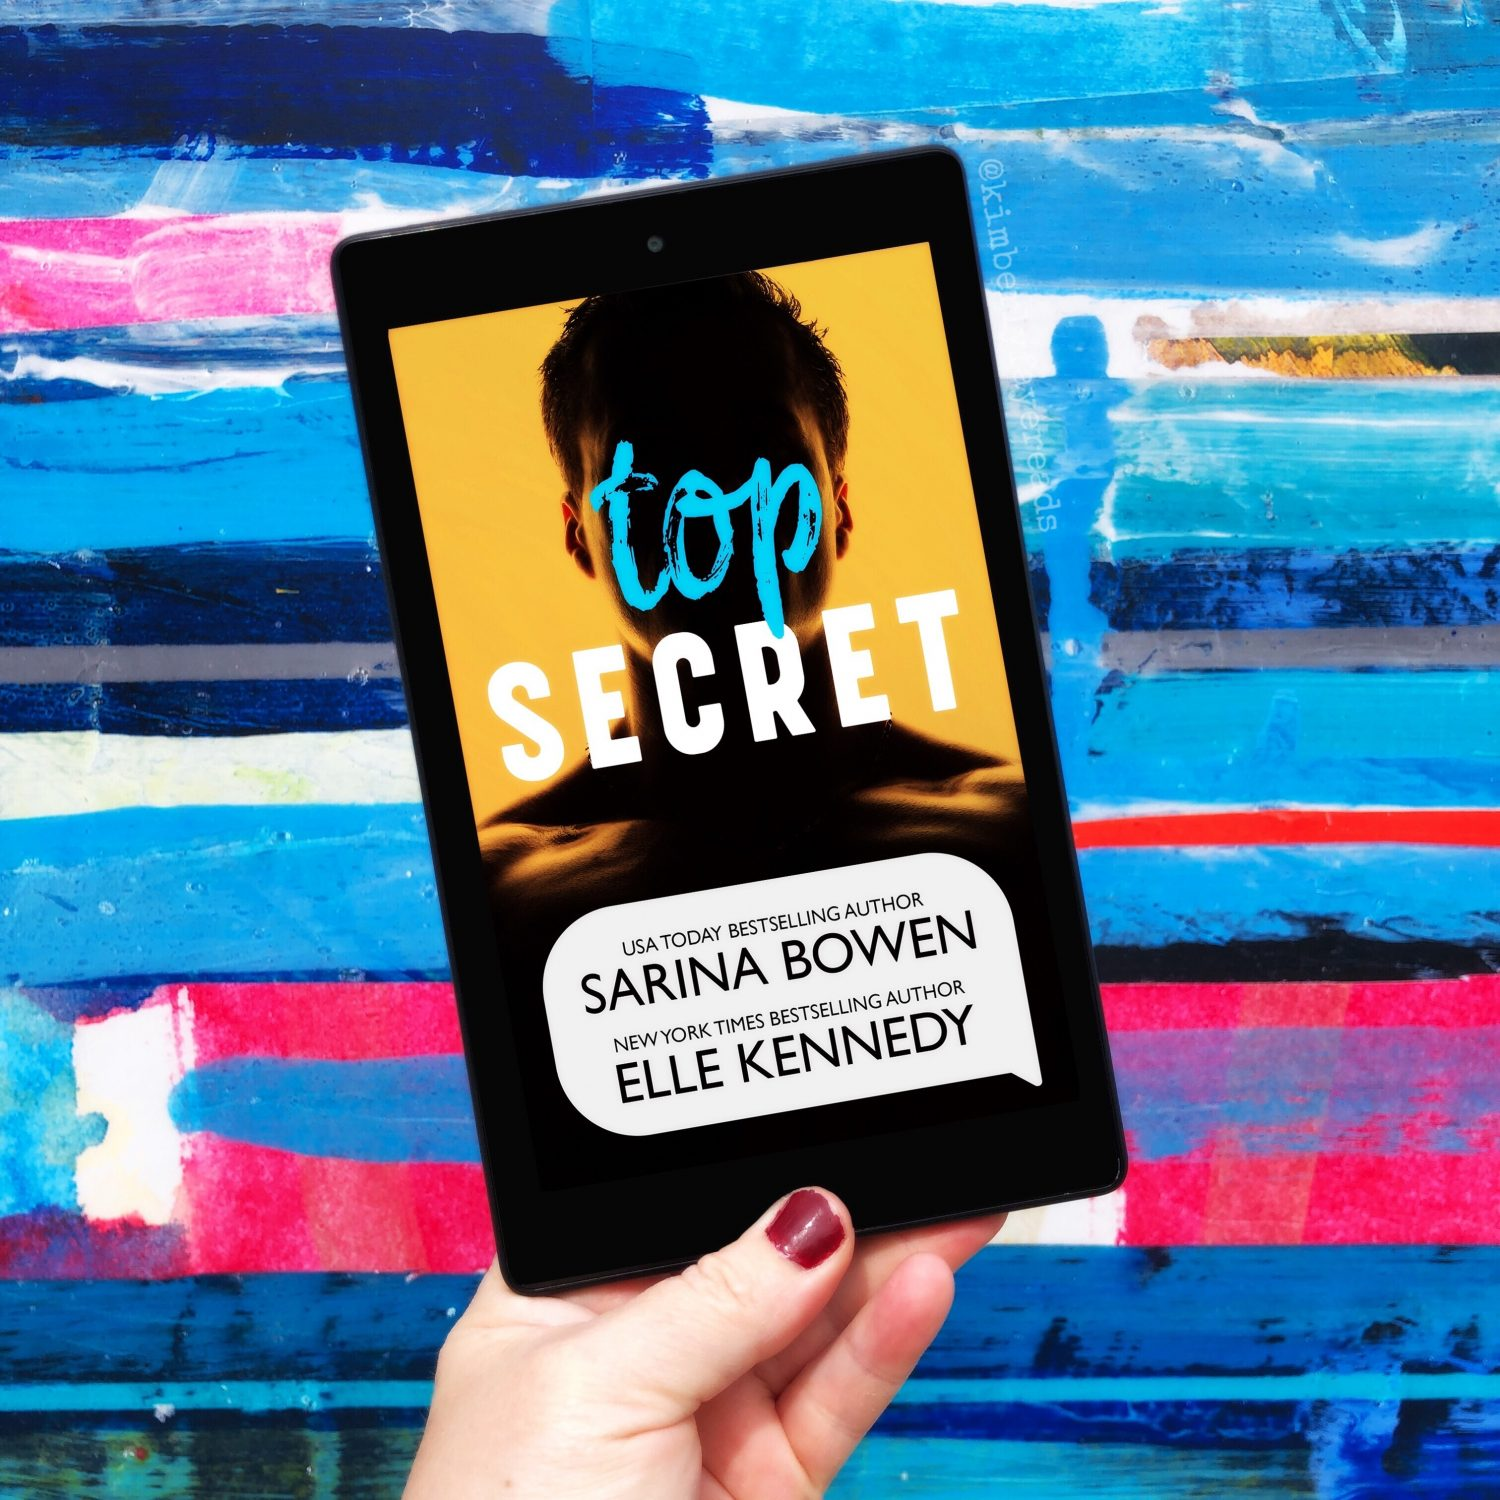 In Review: Top Secret by Sarina Bowen & Elle Kennedy